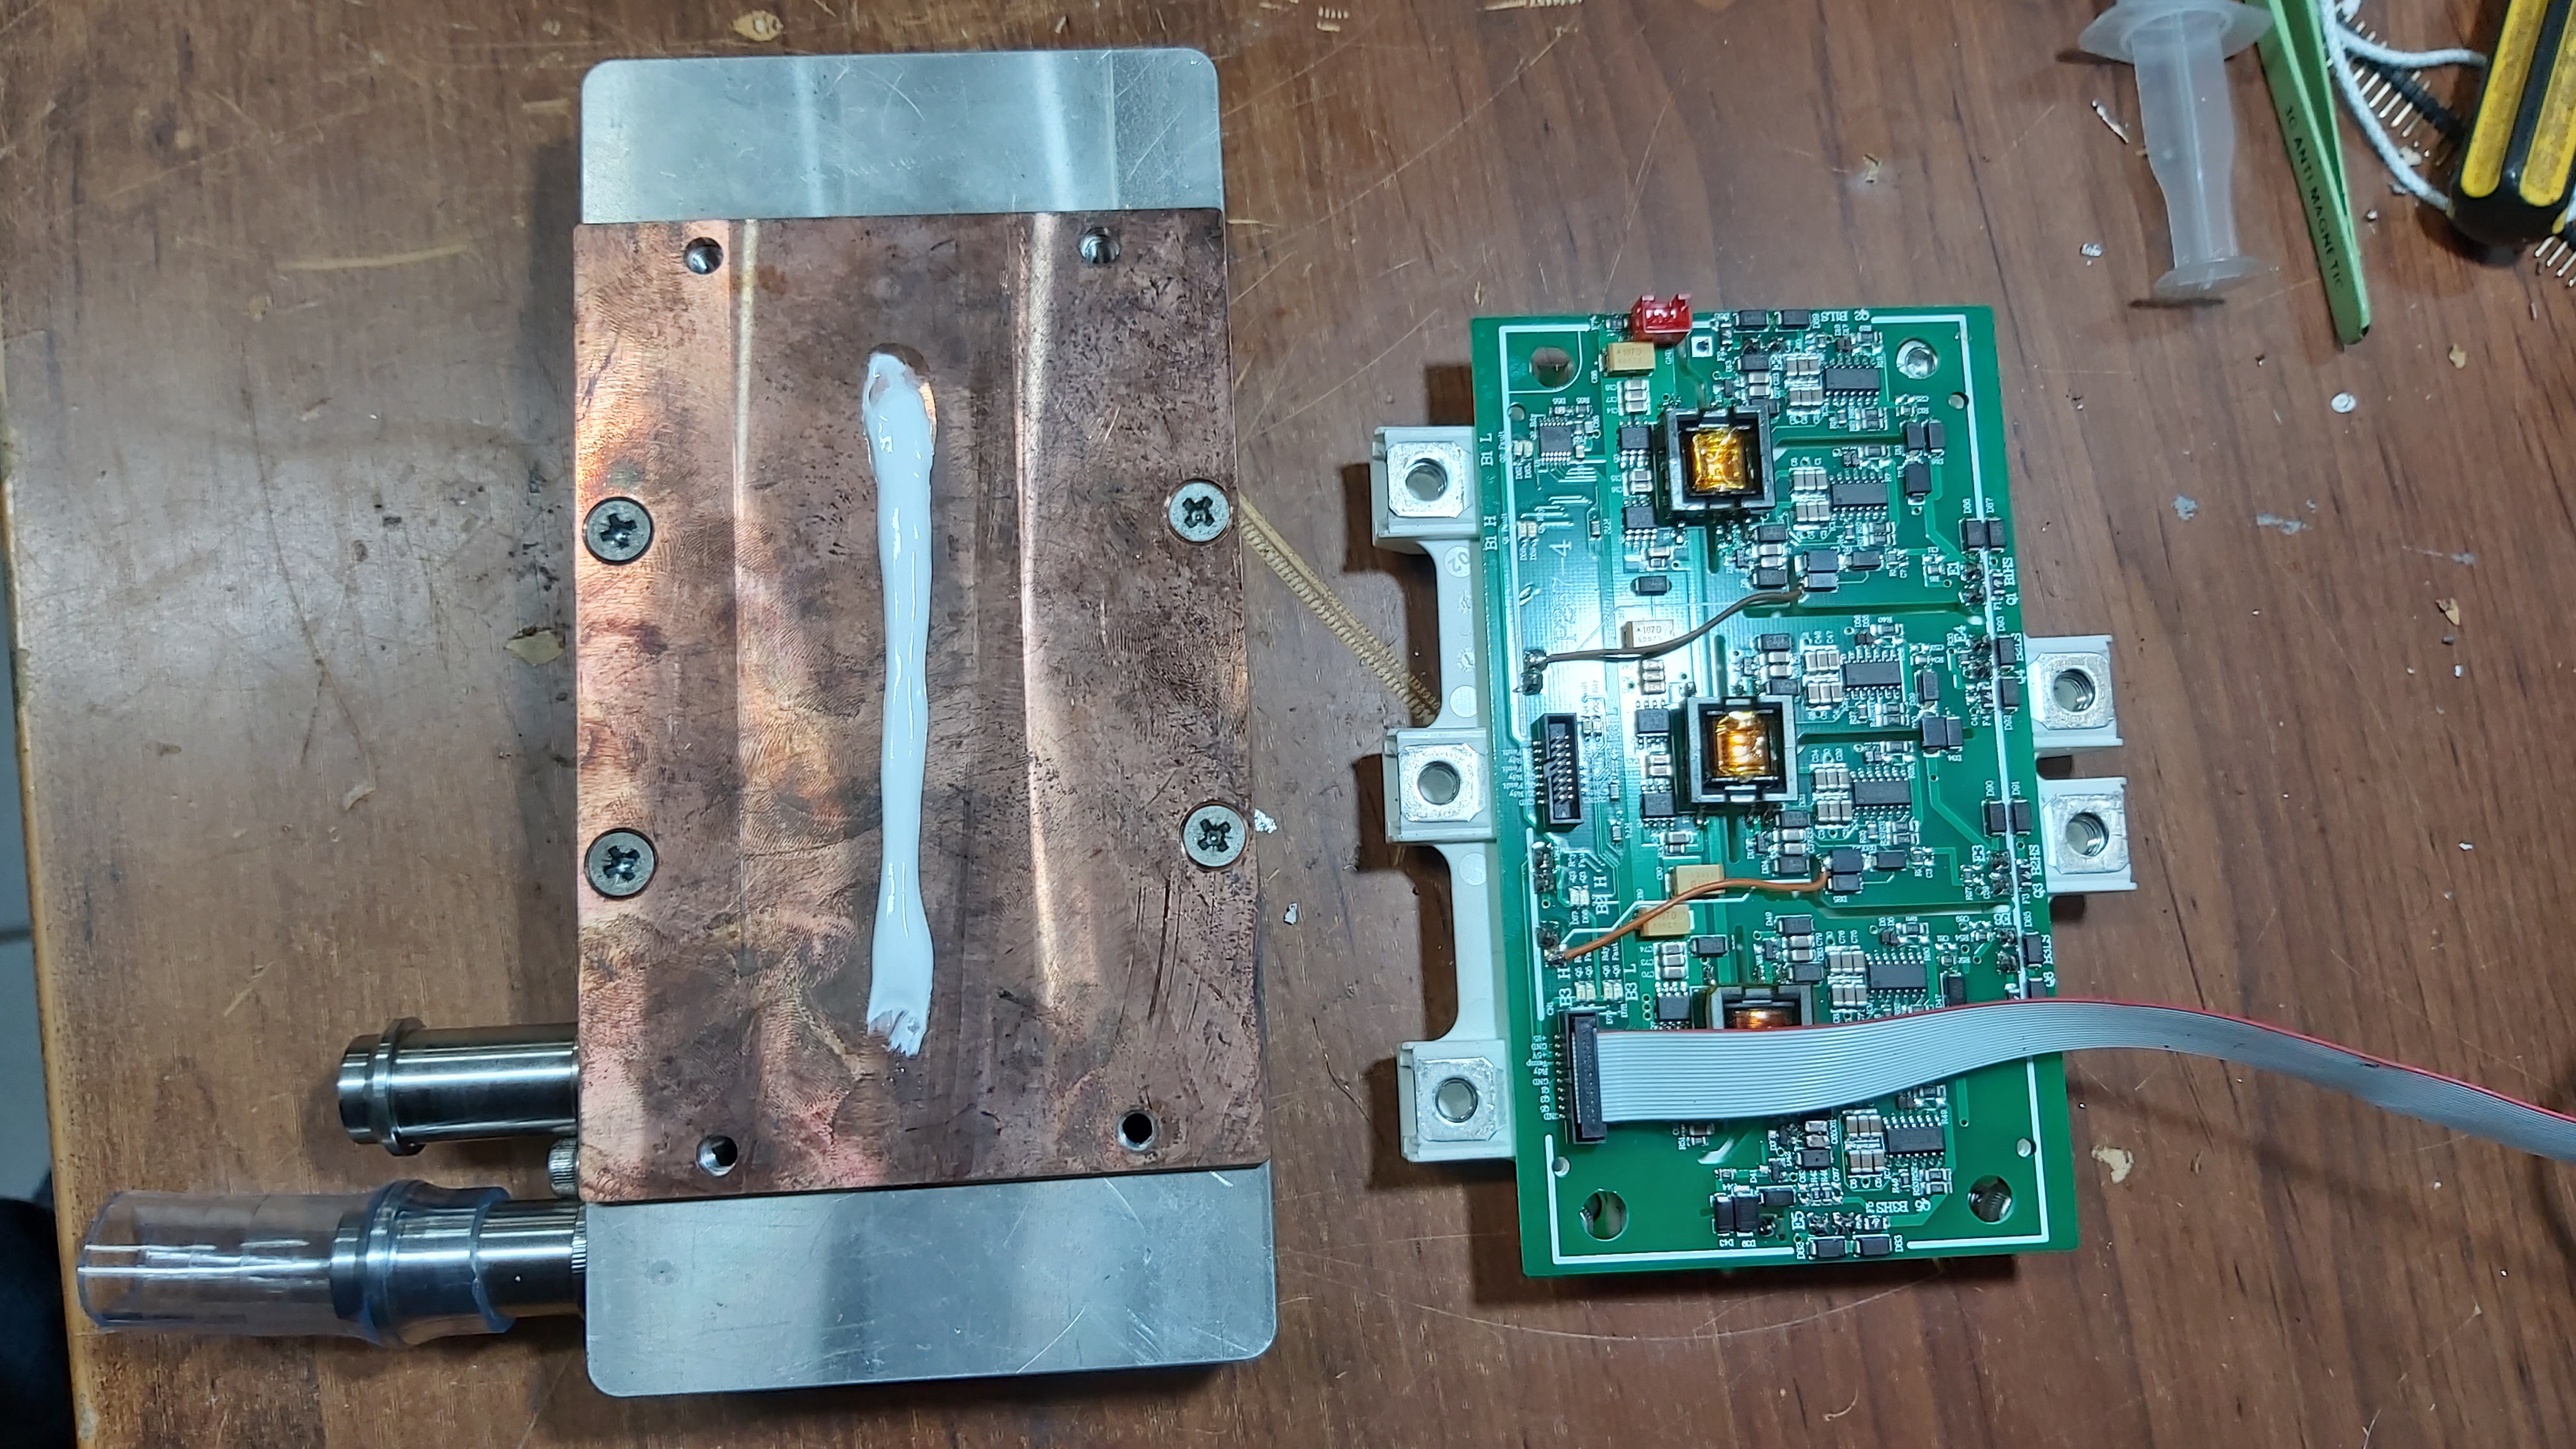 Thermal grease on cooling plate.